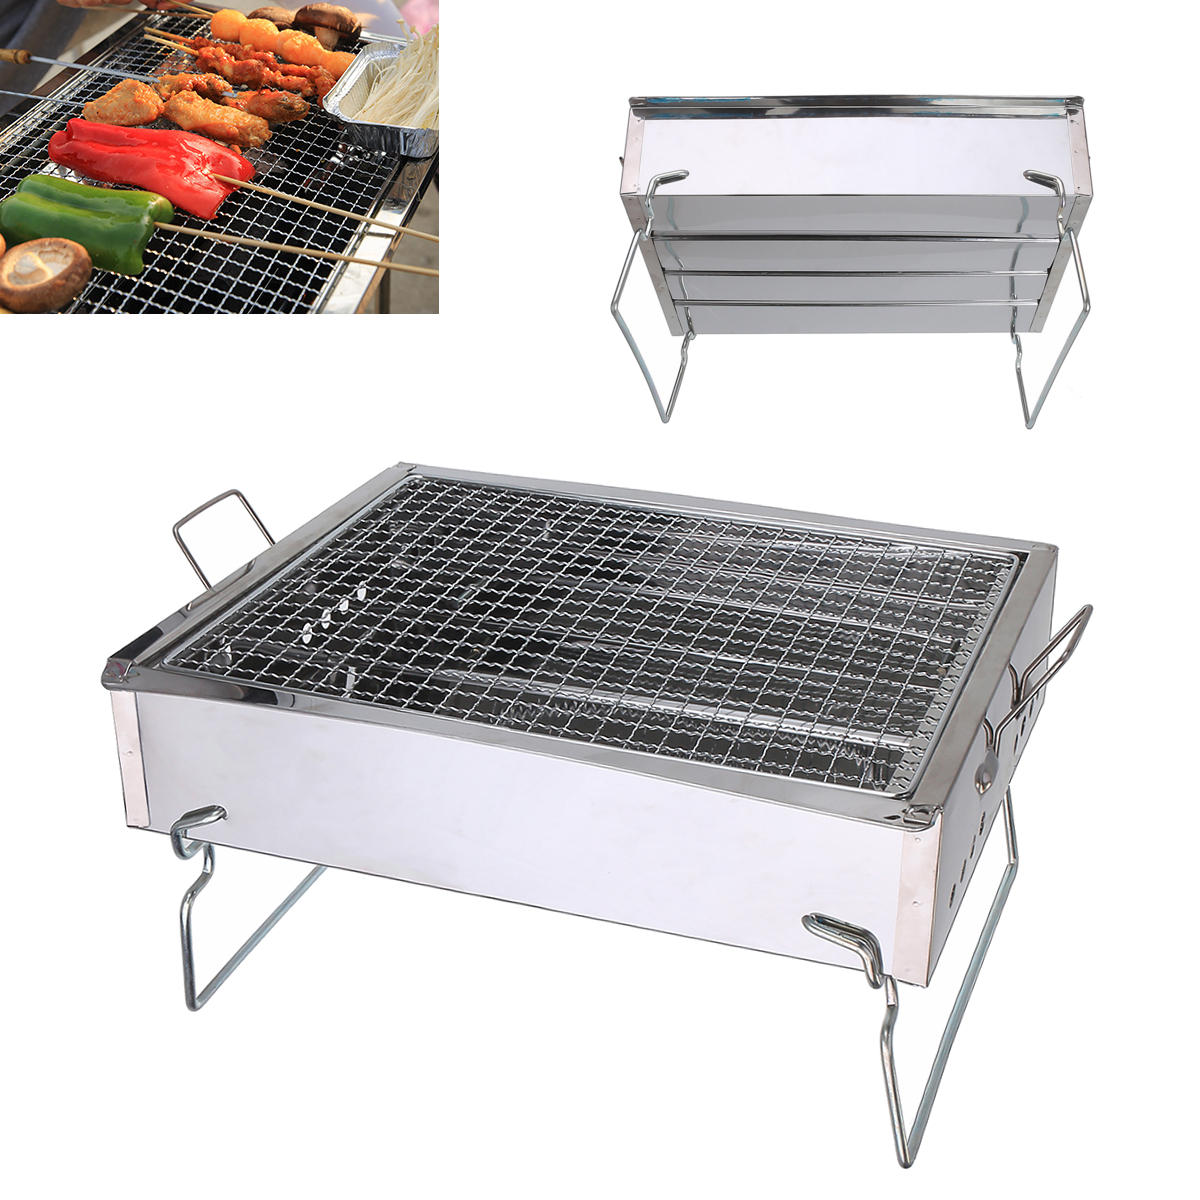 4a22903e0f0 outdoor camping portable folding bbq barbecue grill stainless steel charcoal  burner cooking stove Sale - Banggood.com sold out